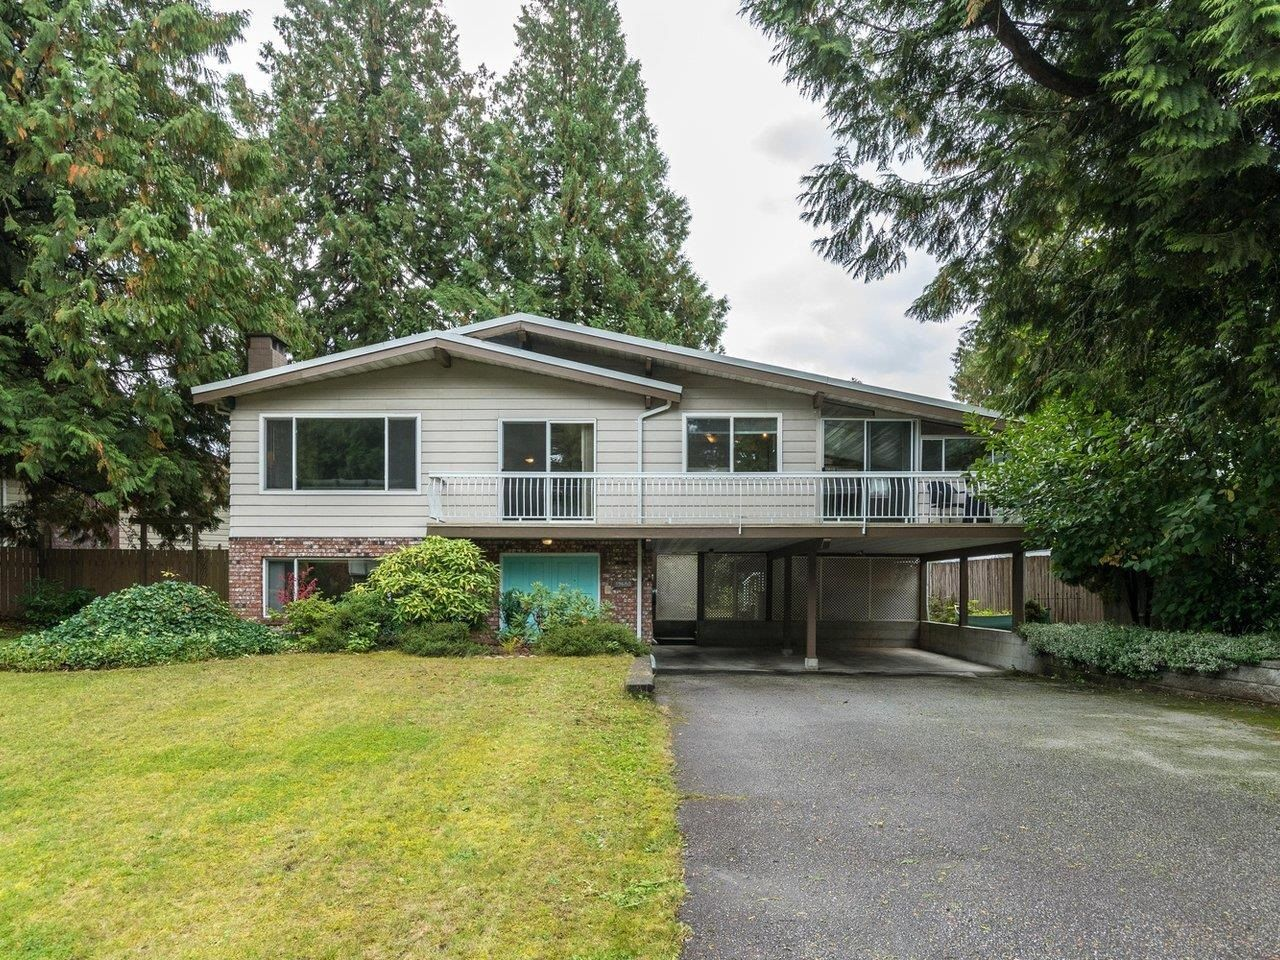 """Main Photo: 19680 116B Avenue in Pitt Meadows: South Meadows House for sale in """"Wildwood Park"""" : MLS®# R2622346"""